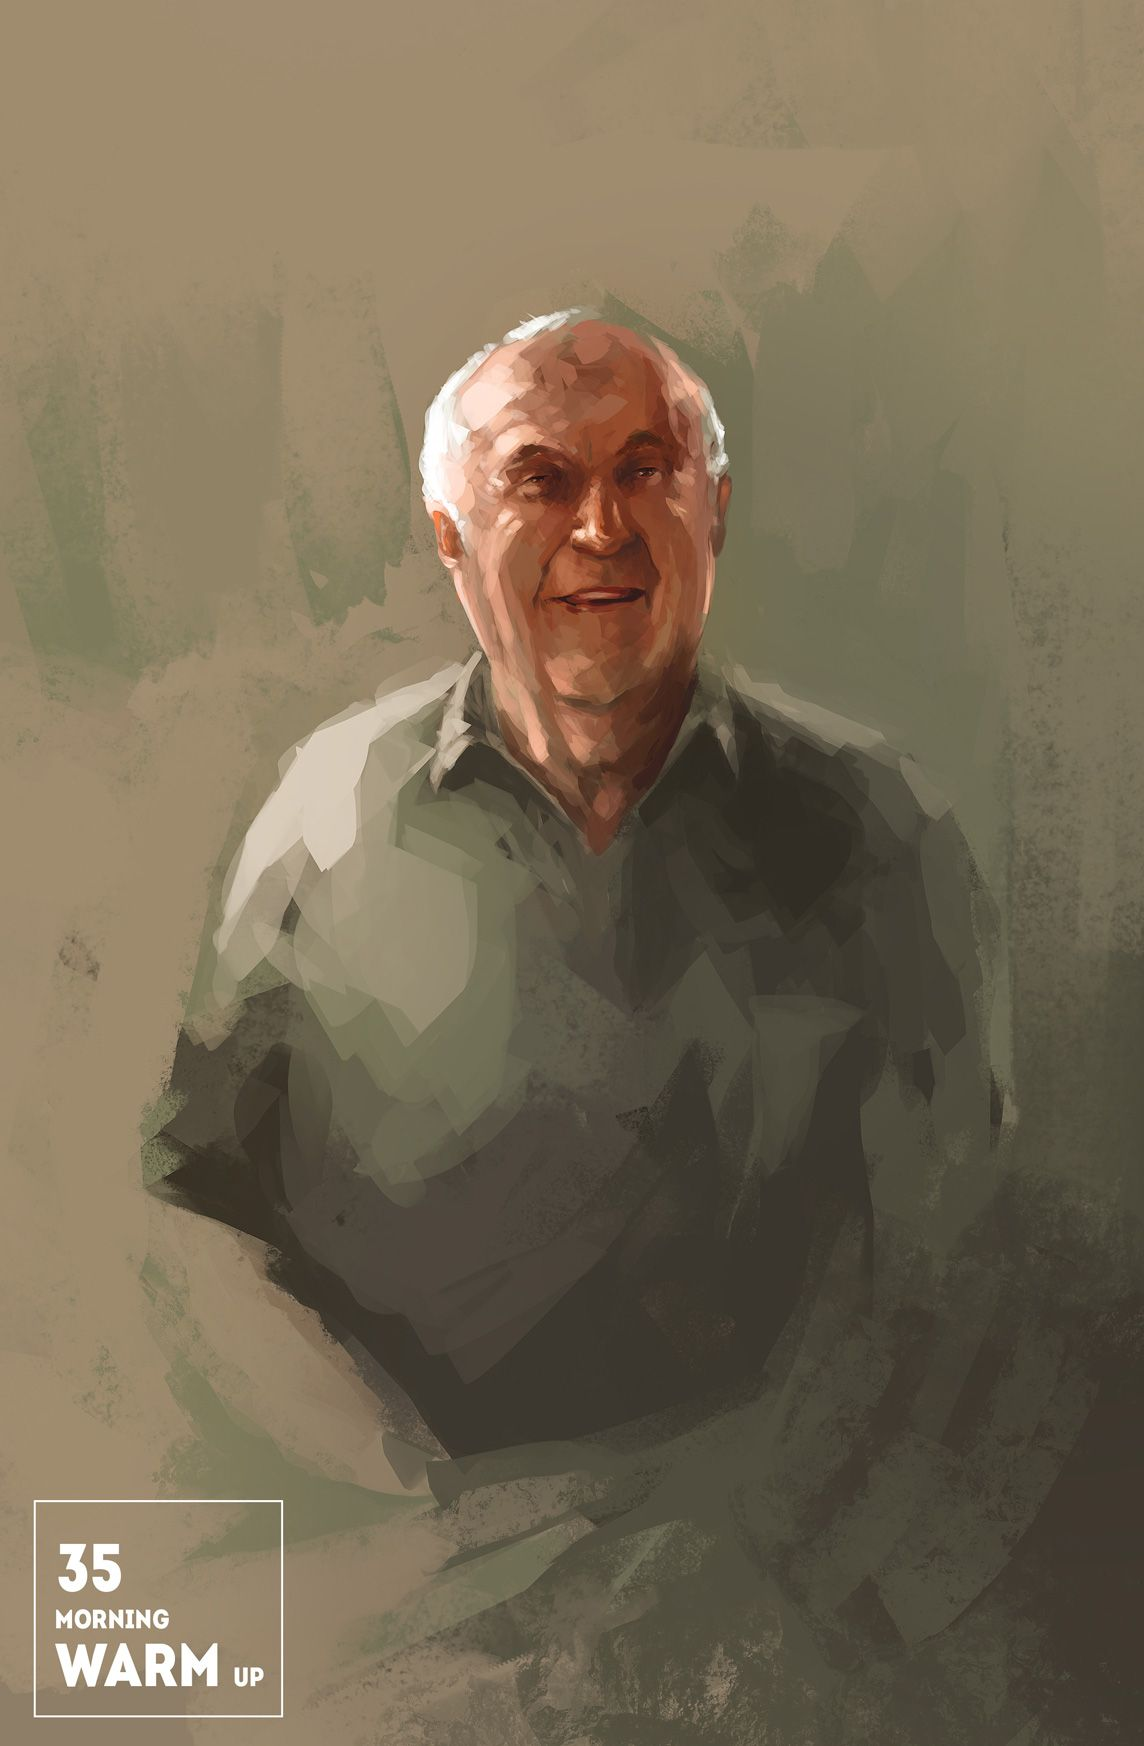 Morning Warm Up 35 Minute Color Study